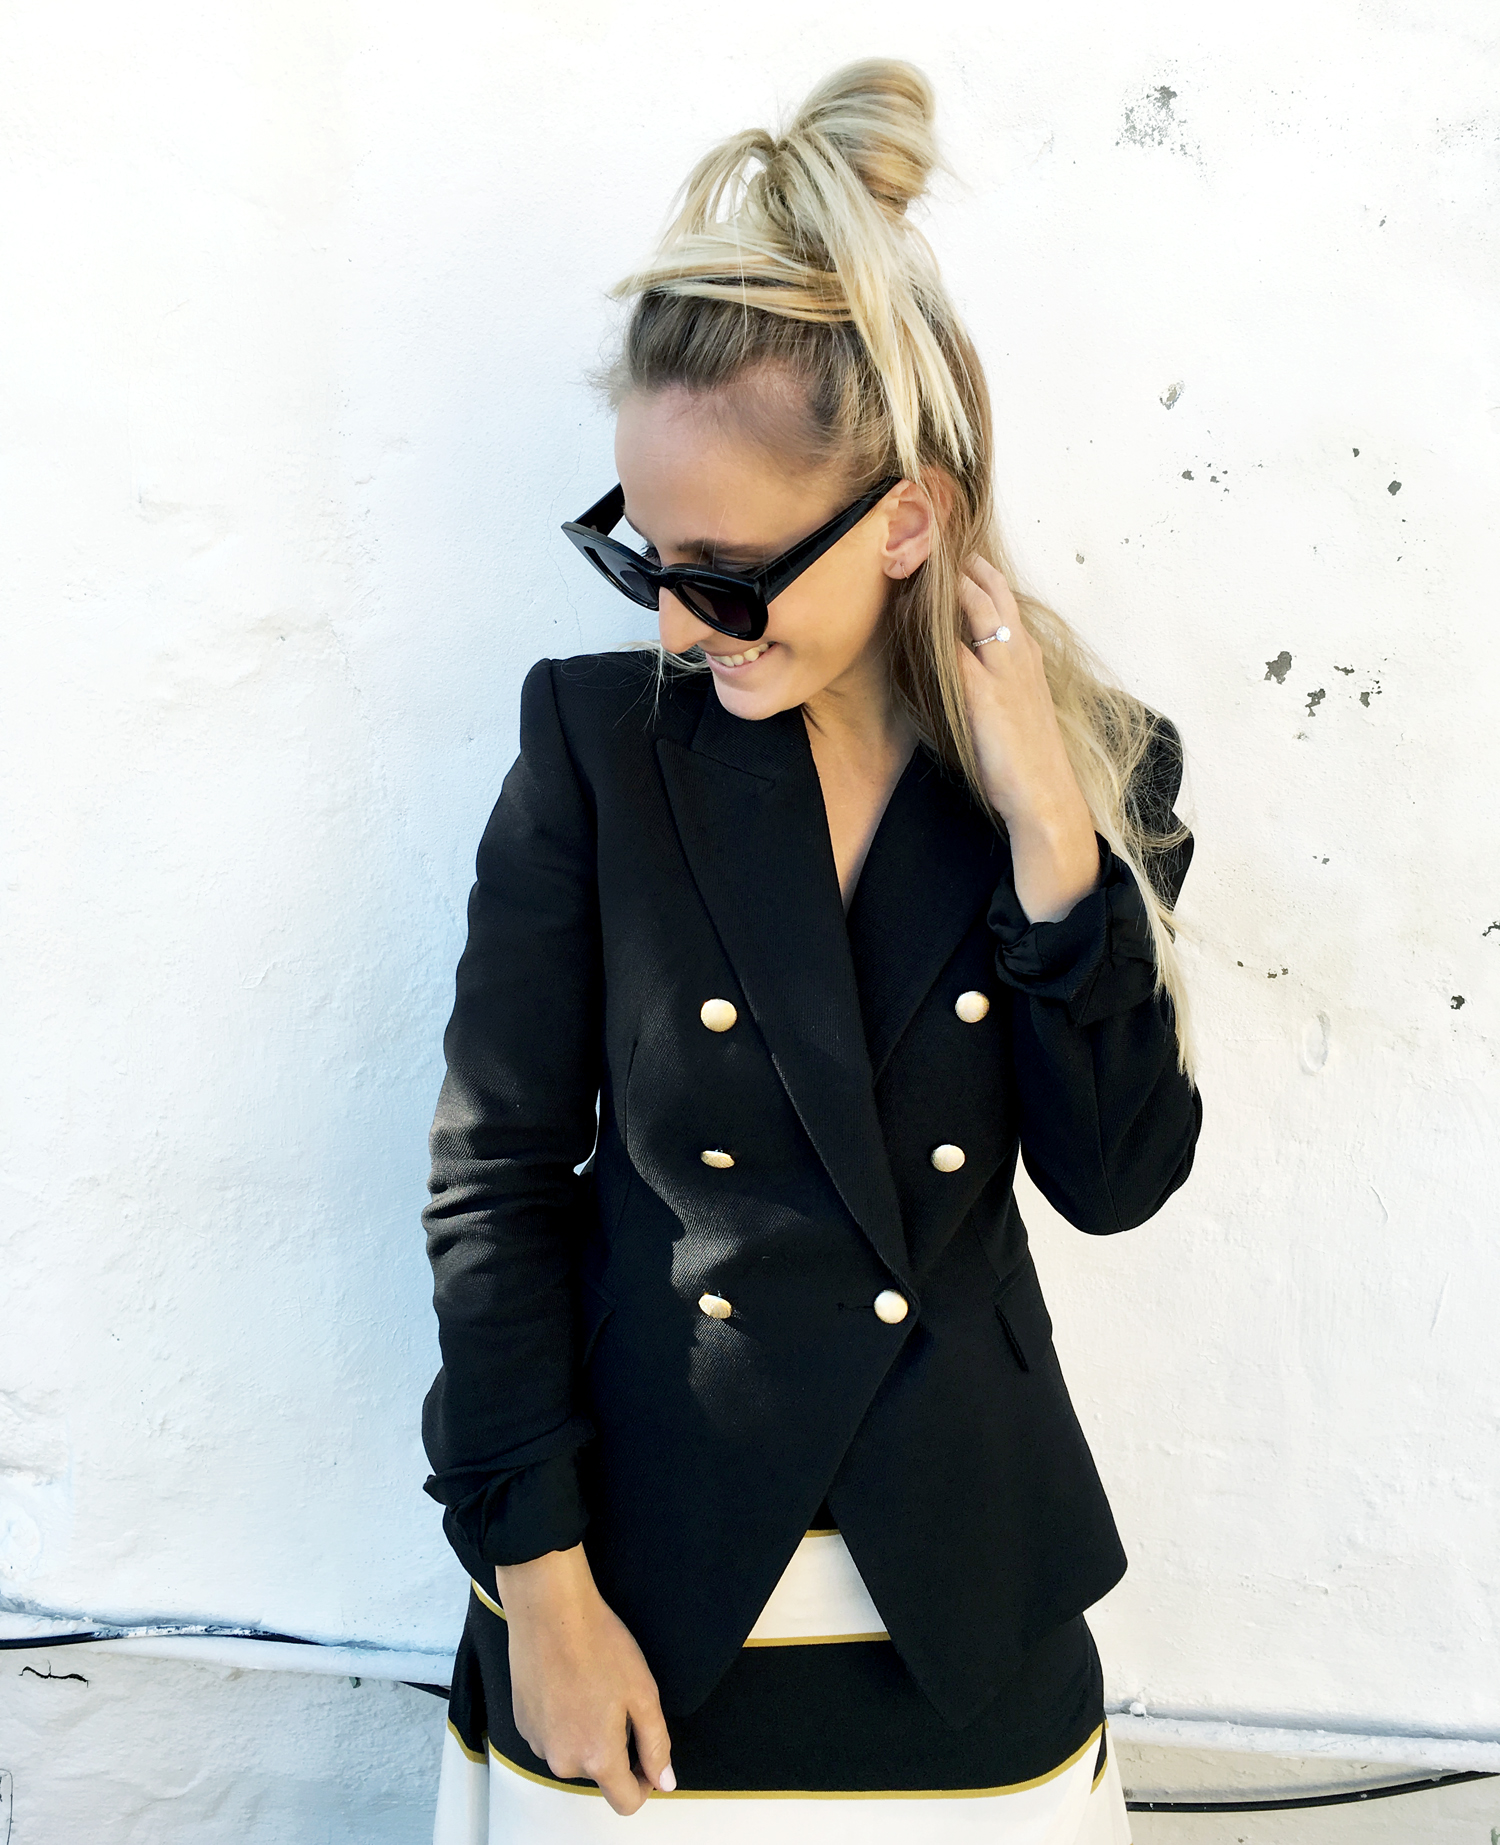 Hair, To knot, How to, Hairstyle, Blonde, Blogger, Fashion, Beaut